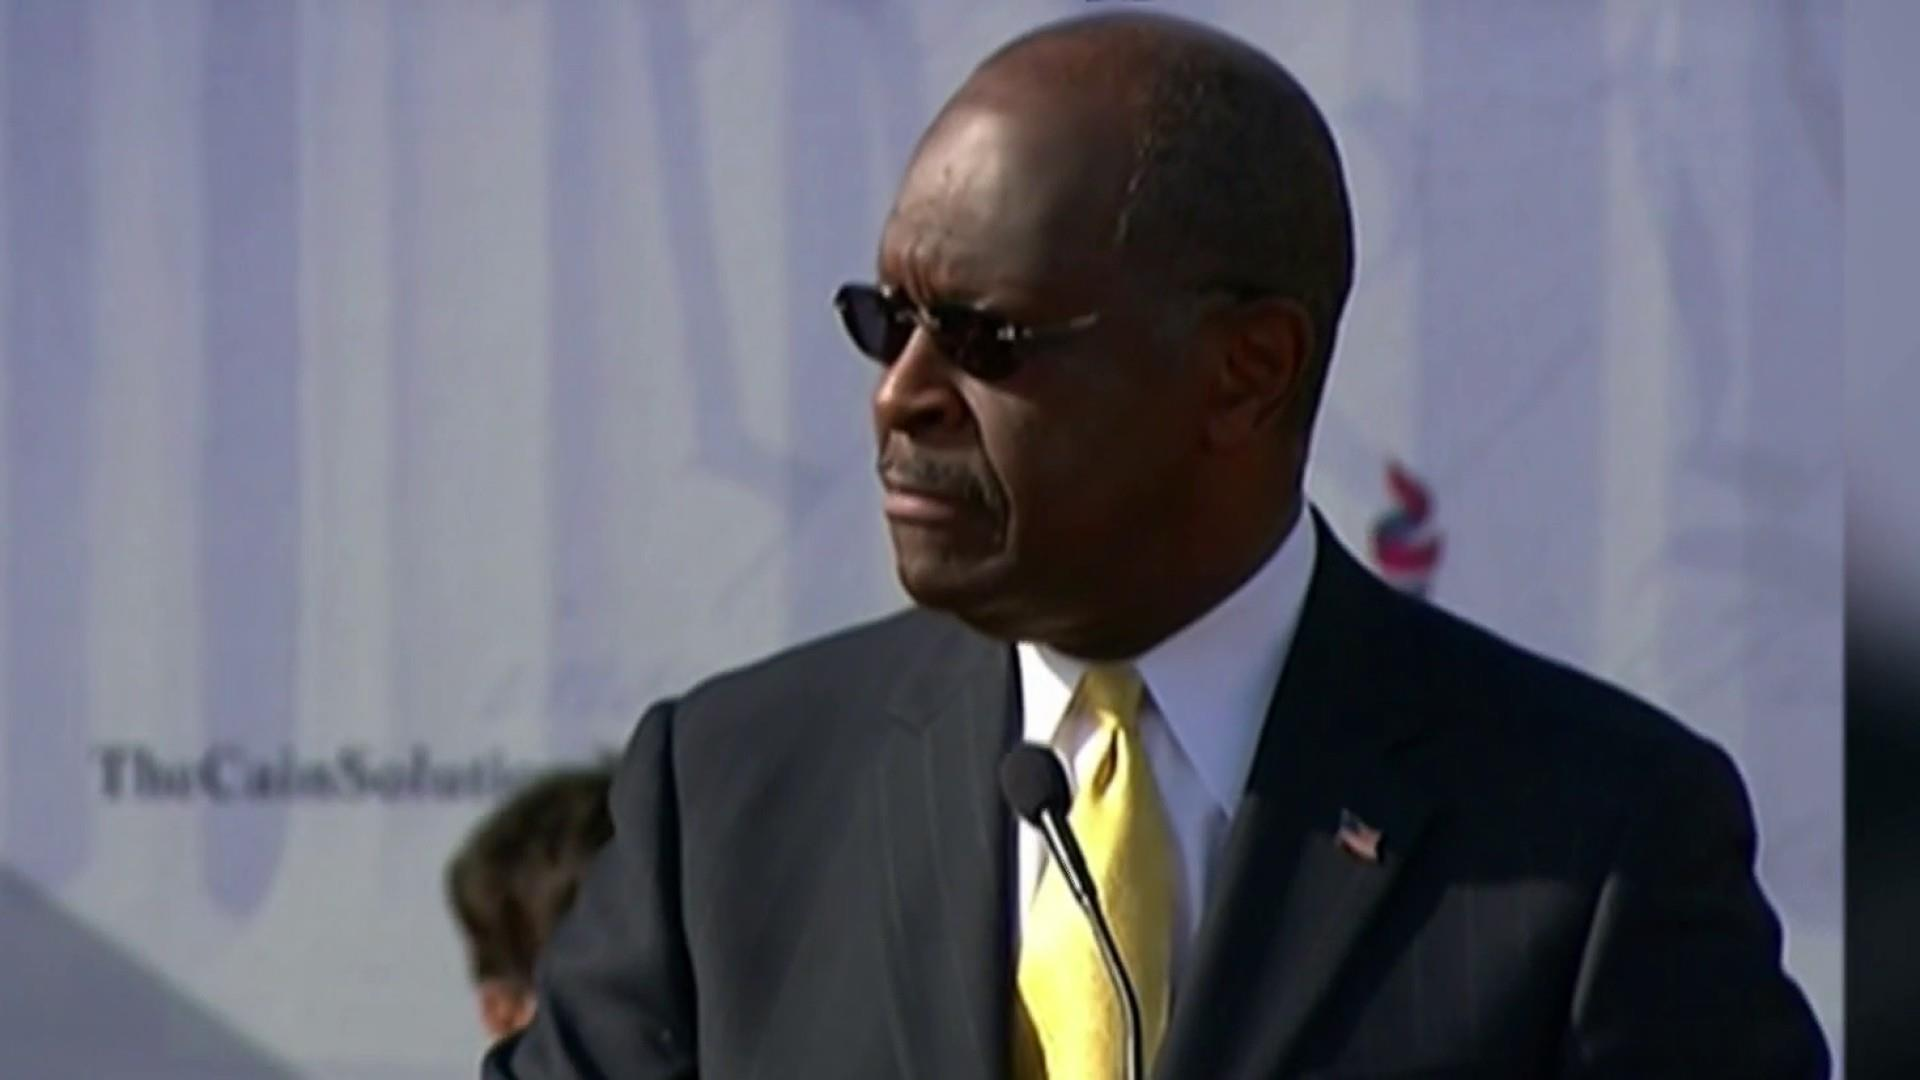 Trump trying to hand keys to U.S. economy to Herman Cain